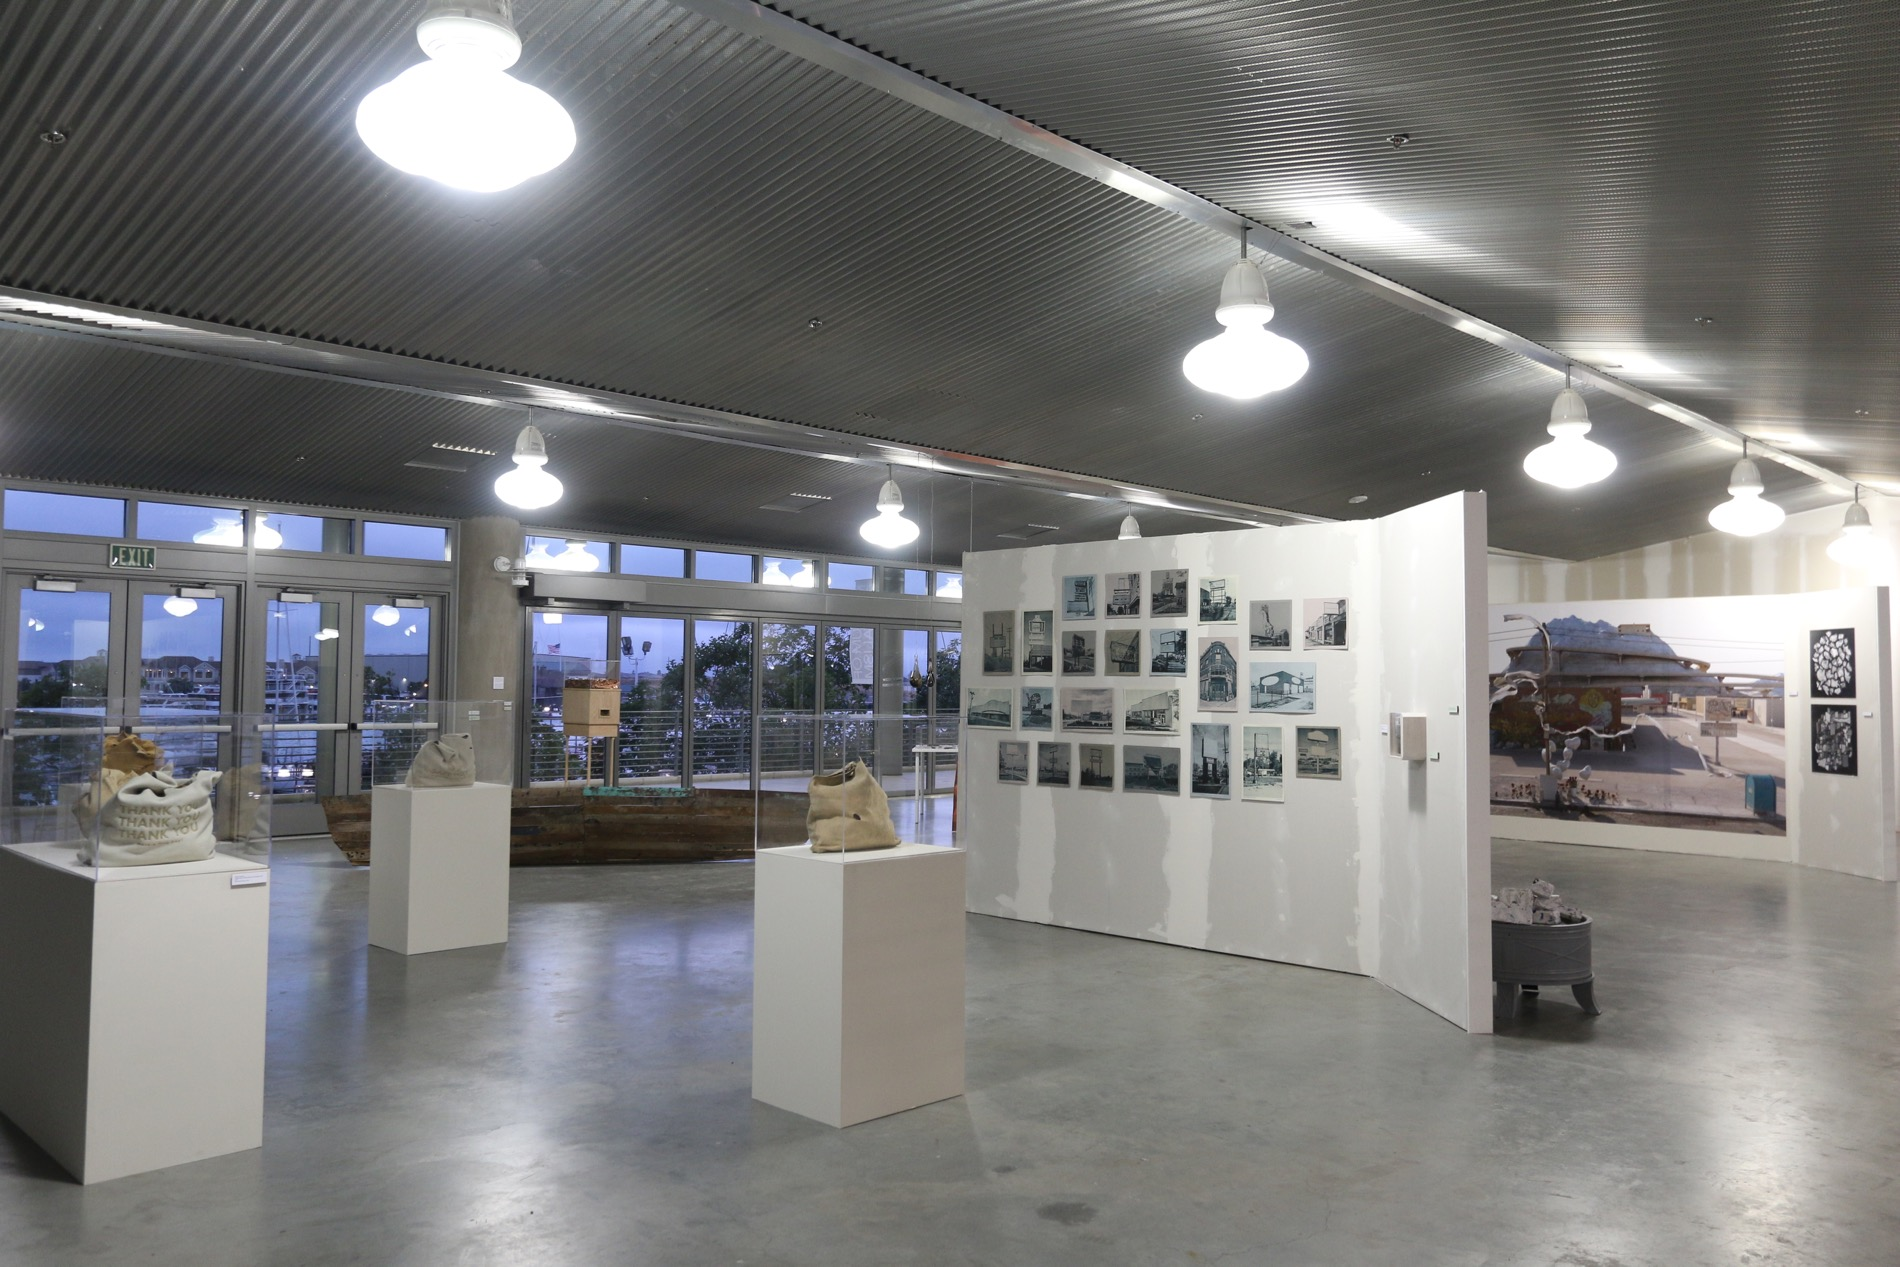 the exhibition filled 13,000 square feet of space in total